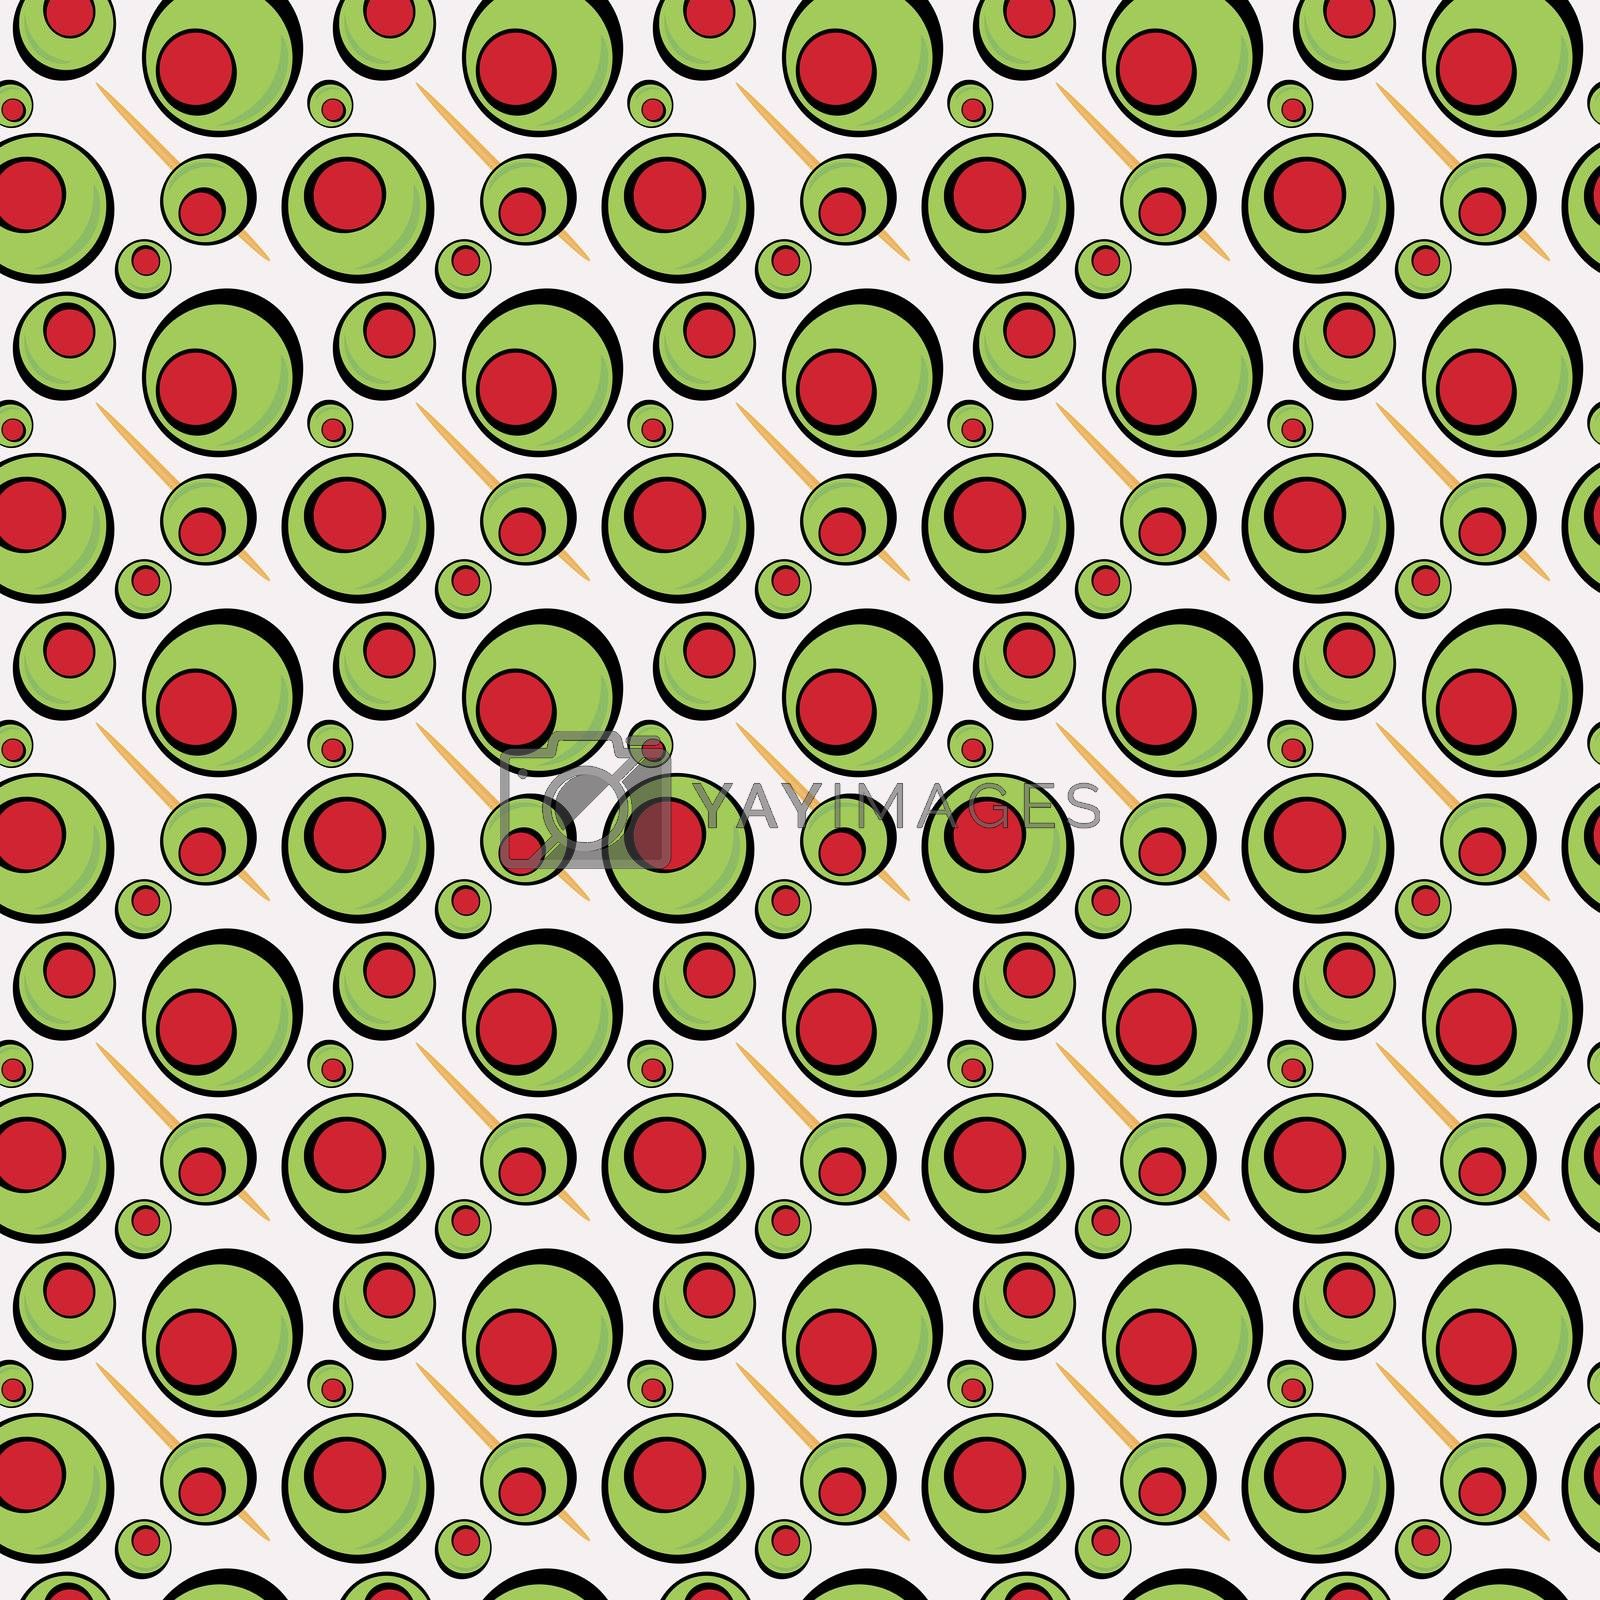 A green olives illustration that tiles seamlessly in a pattern in any direction.  Great for a martini graphic or restaurant drinks menu.